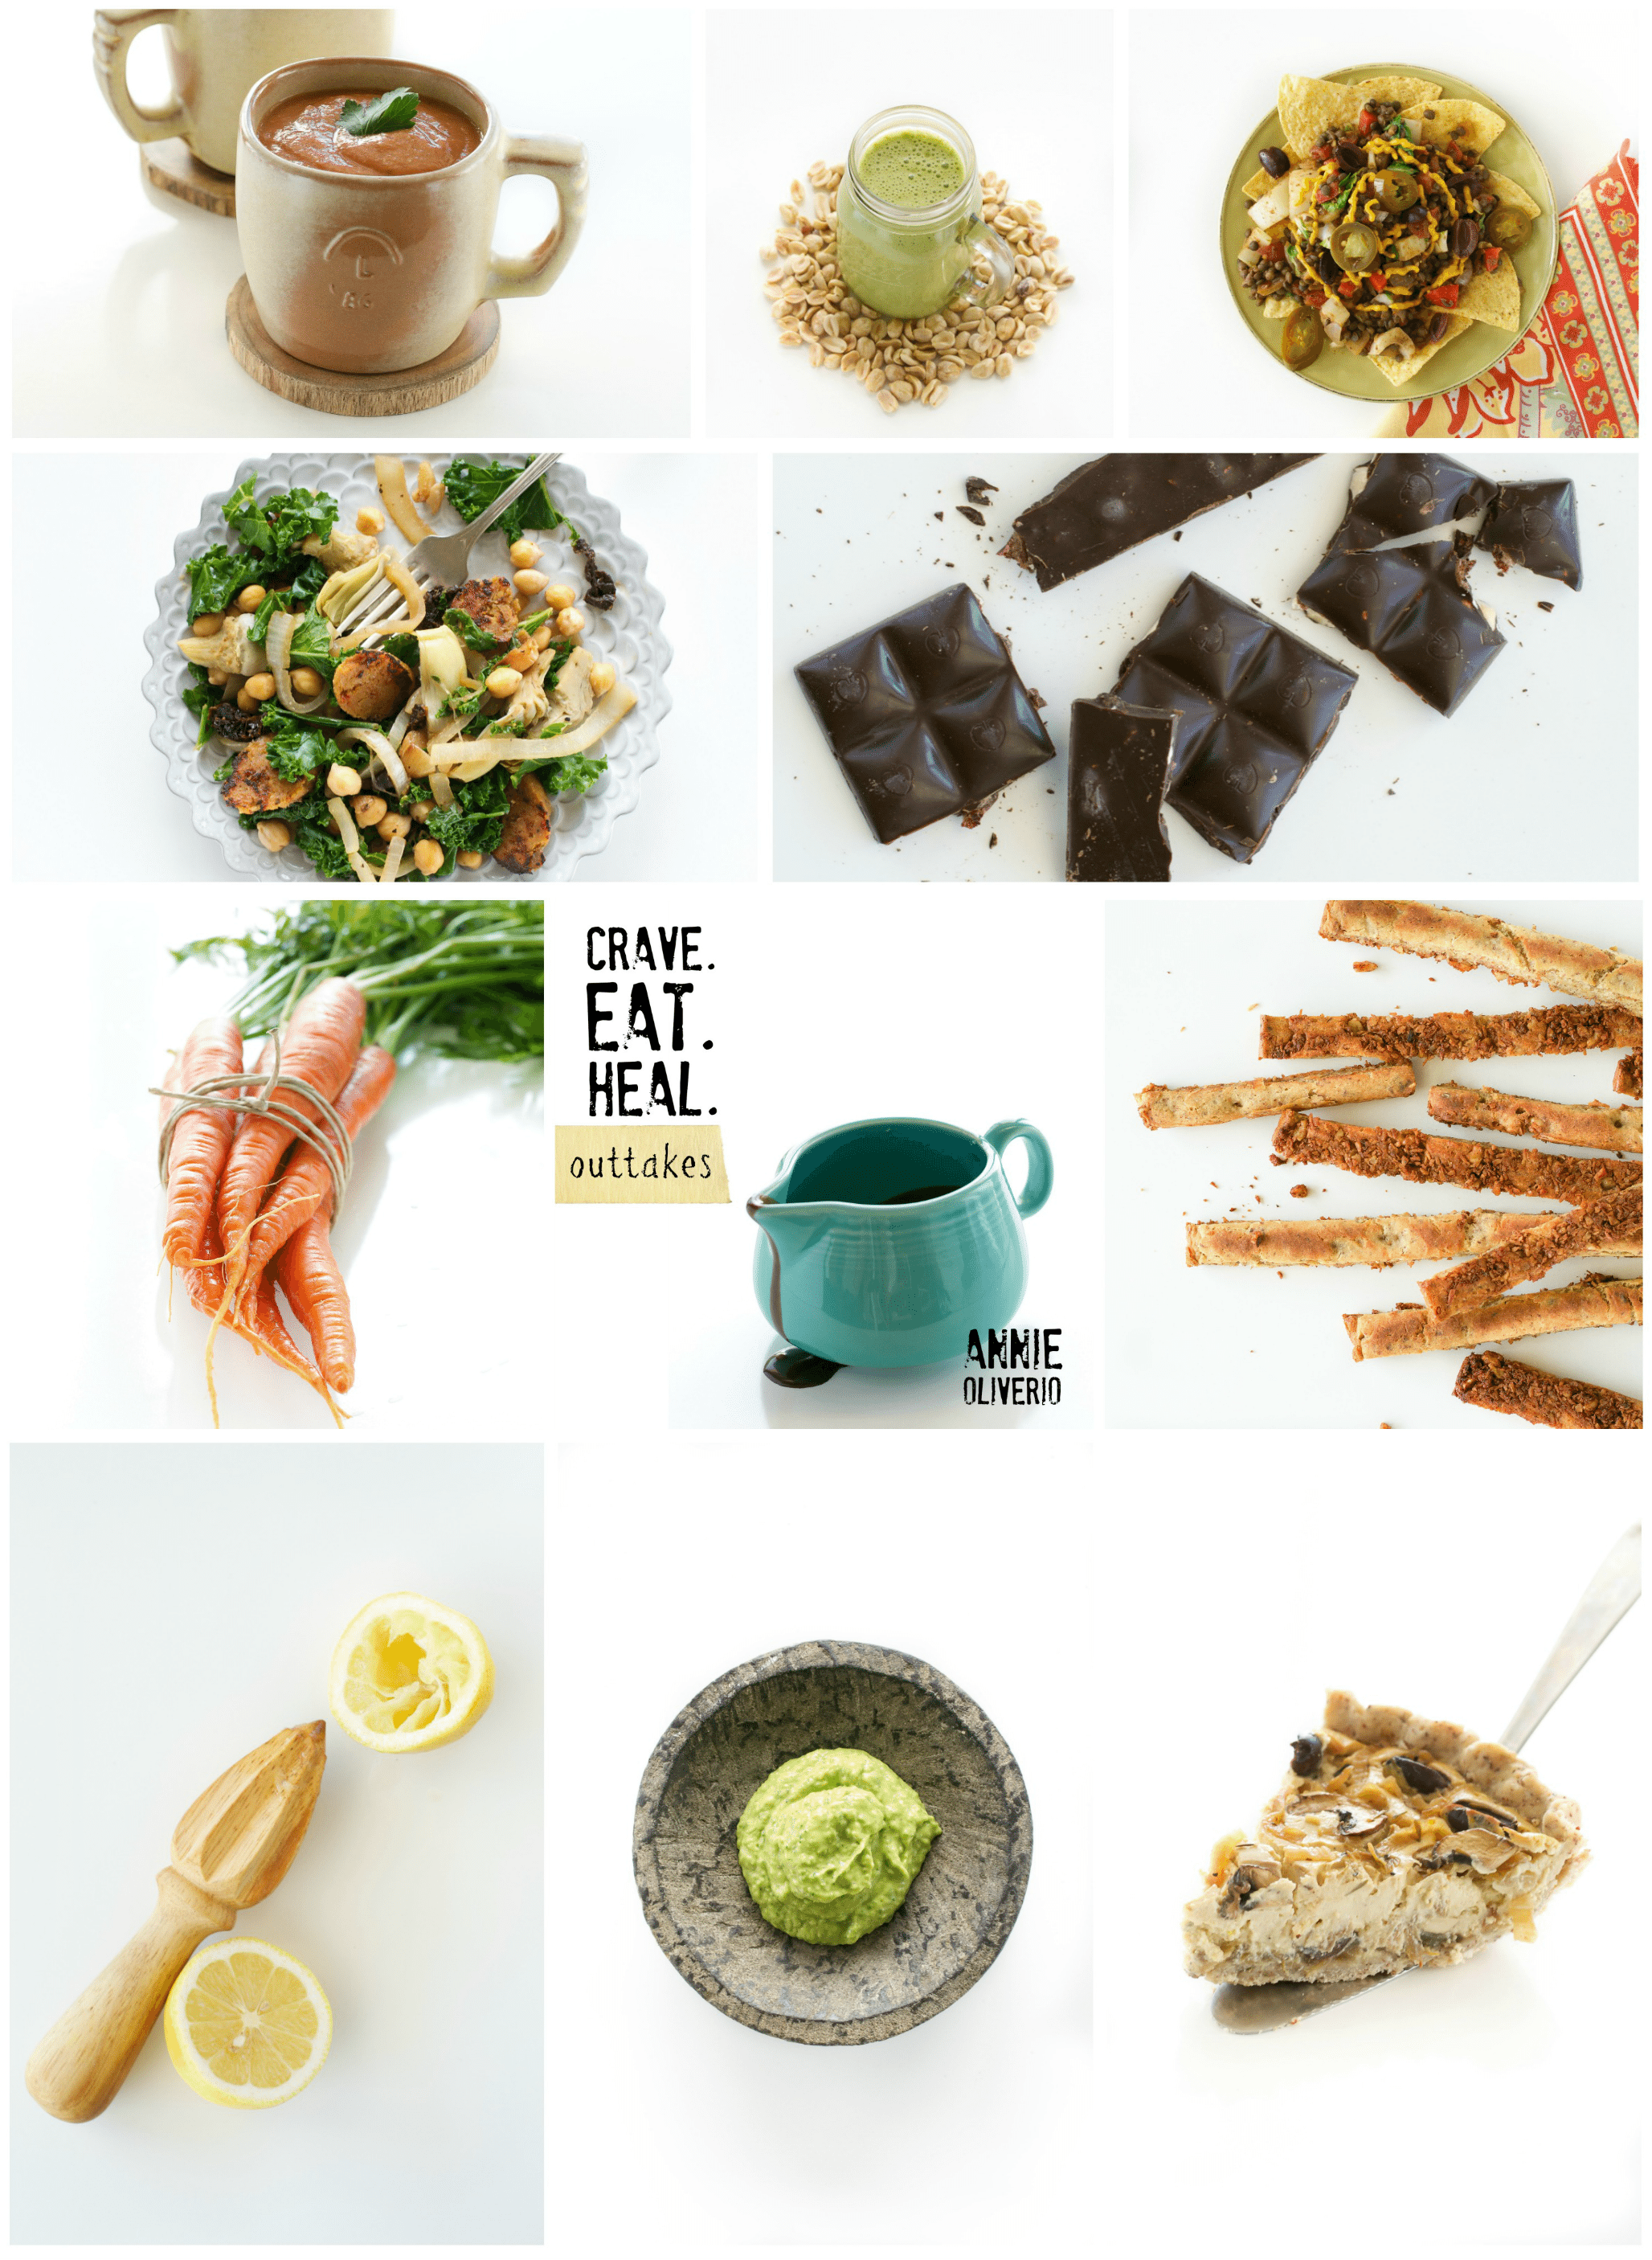 Crave Eat Heal Outtakes Collage